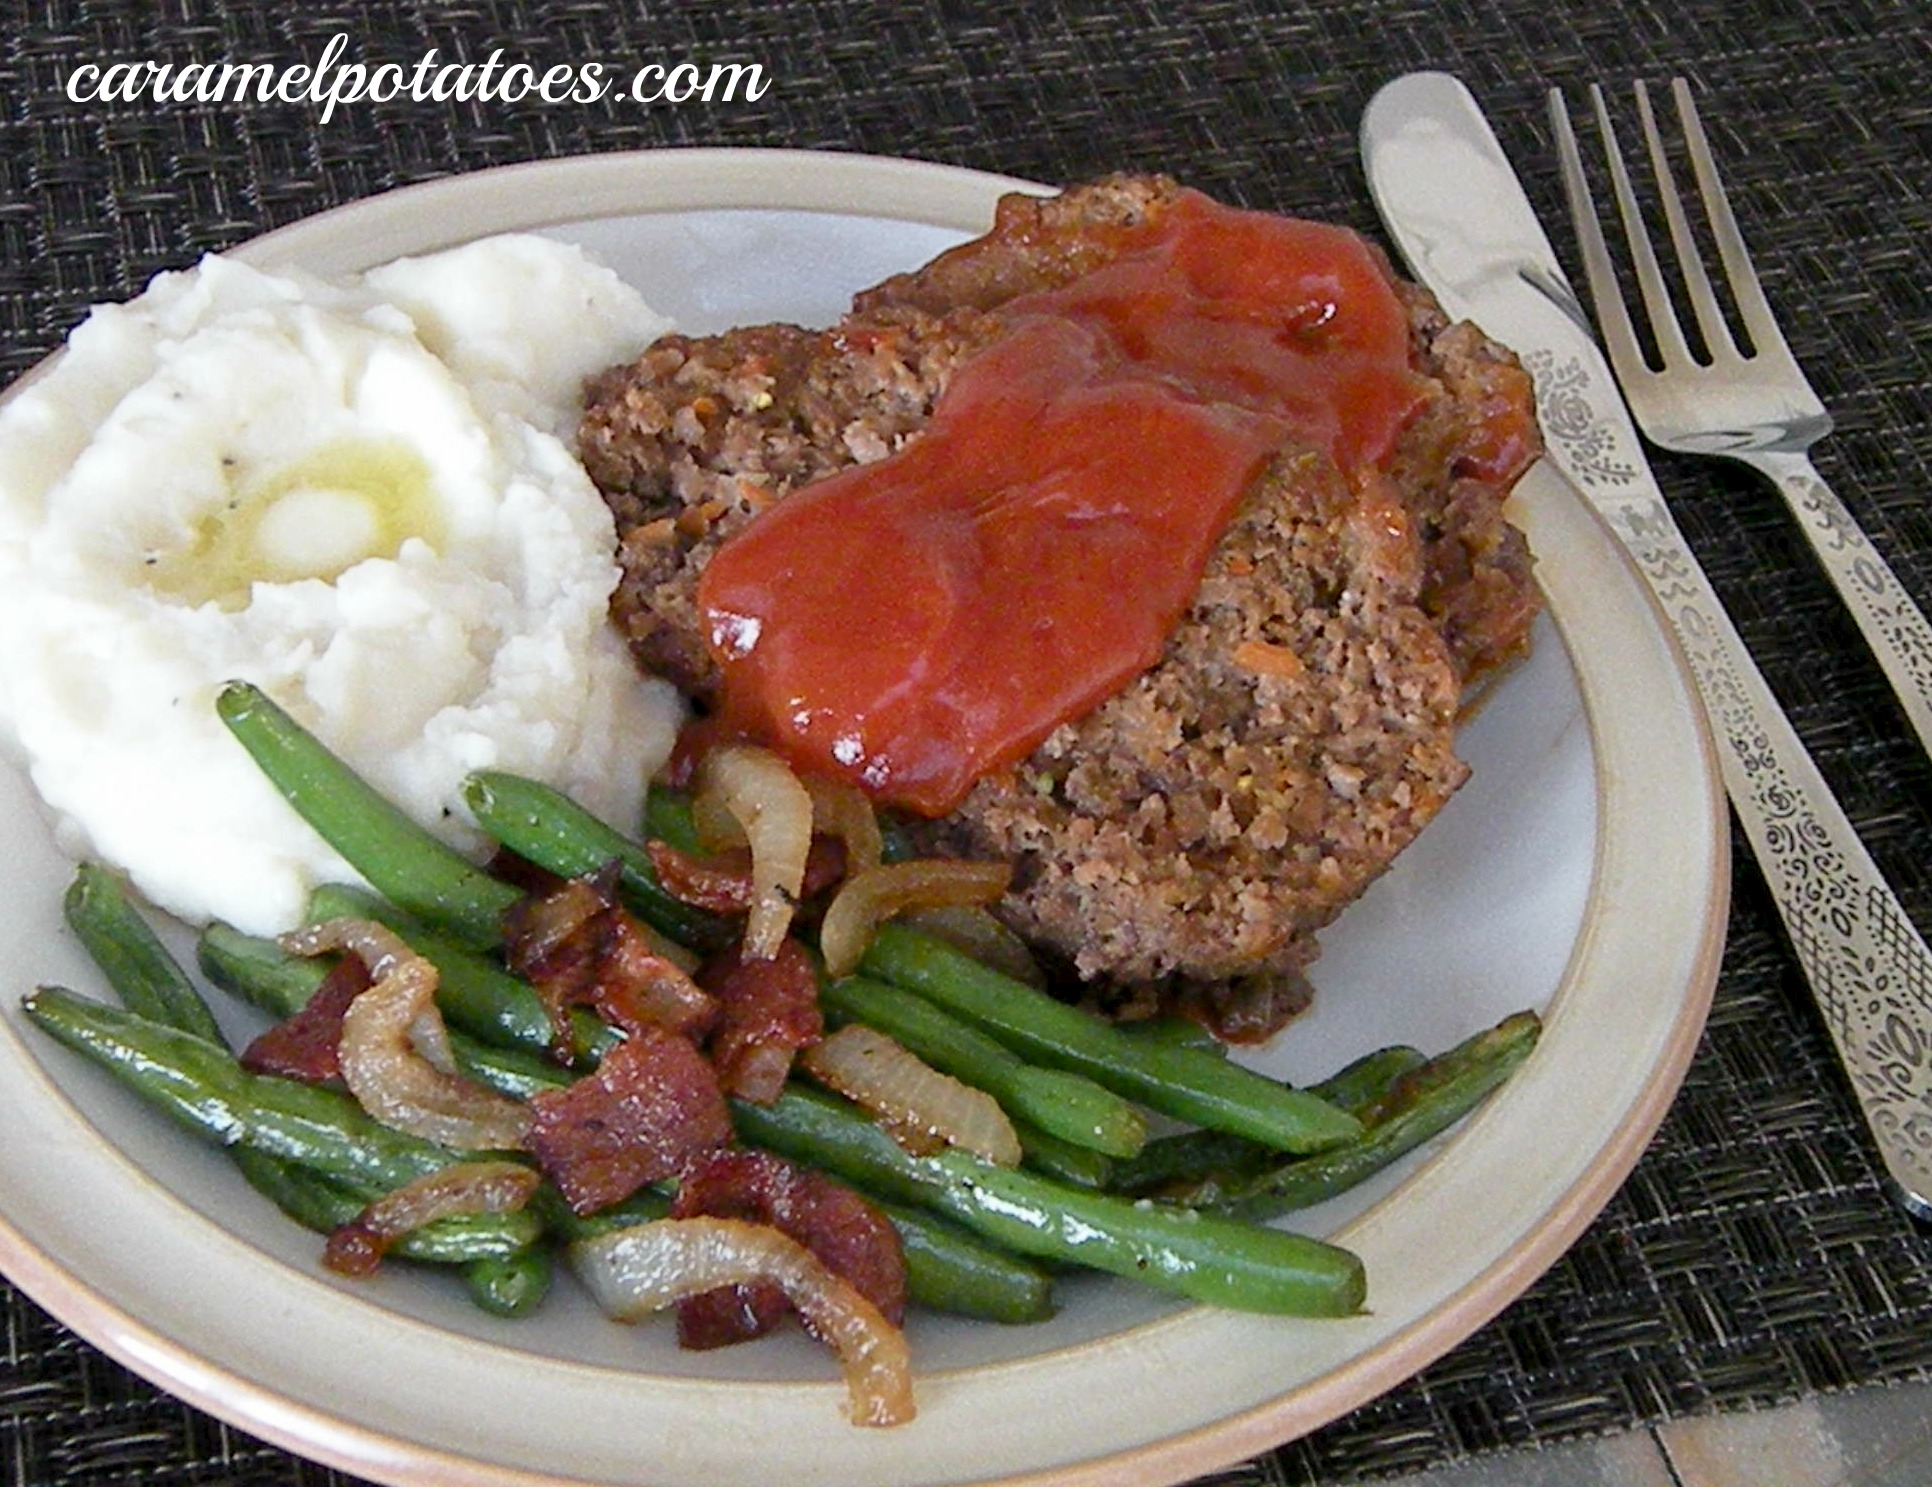 Caramel Potatoes » Meatloaf with Brown Sugar Ketchup Sauce